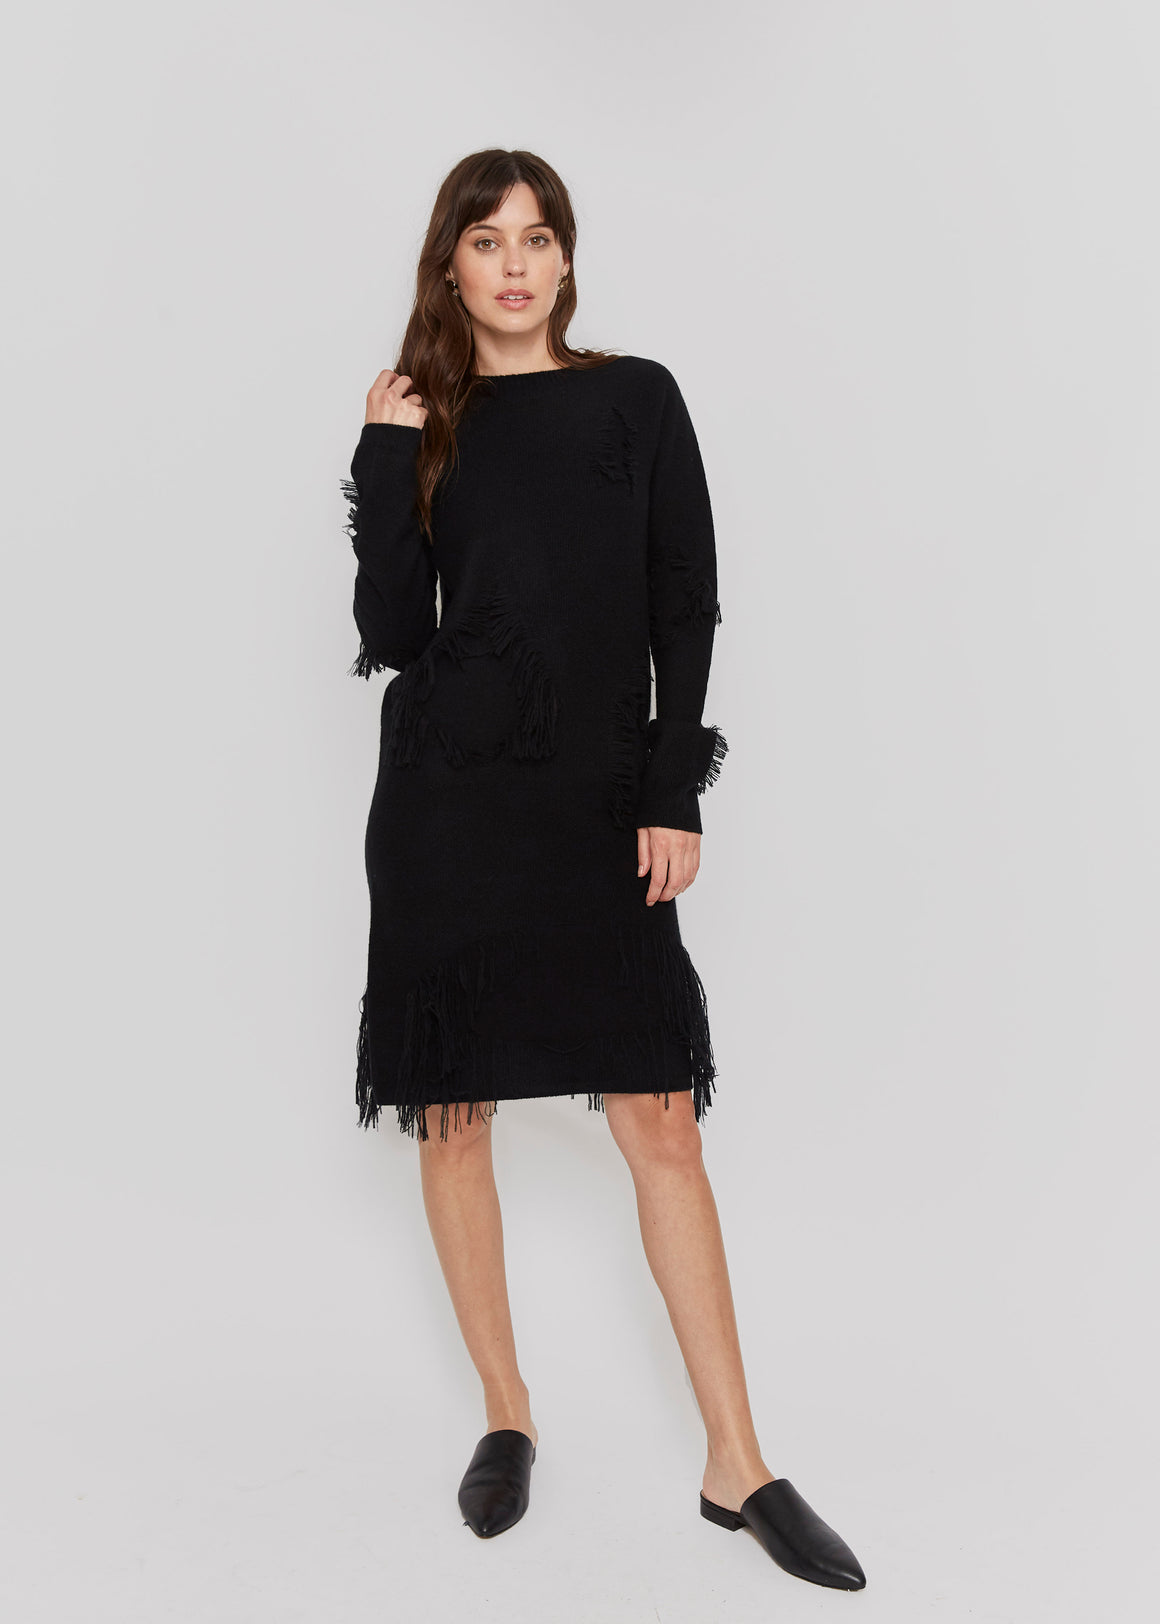 78e912c0050 women black cashmere sweater dress relax fit casual